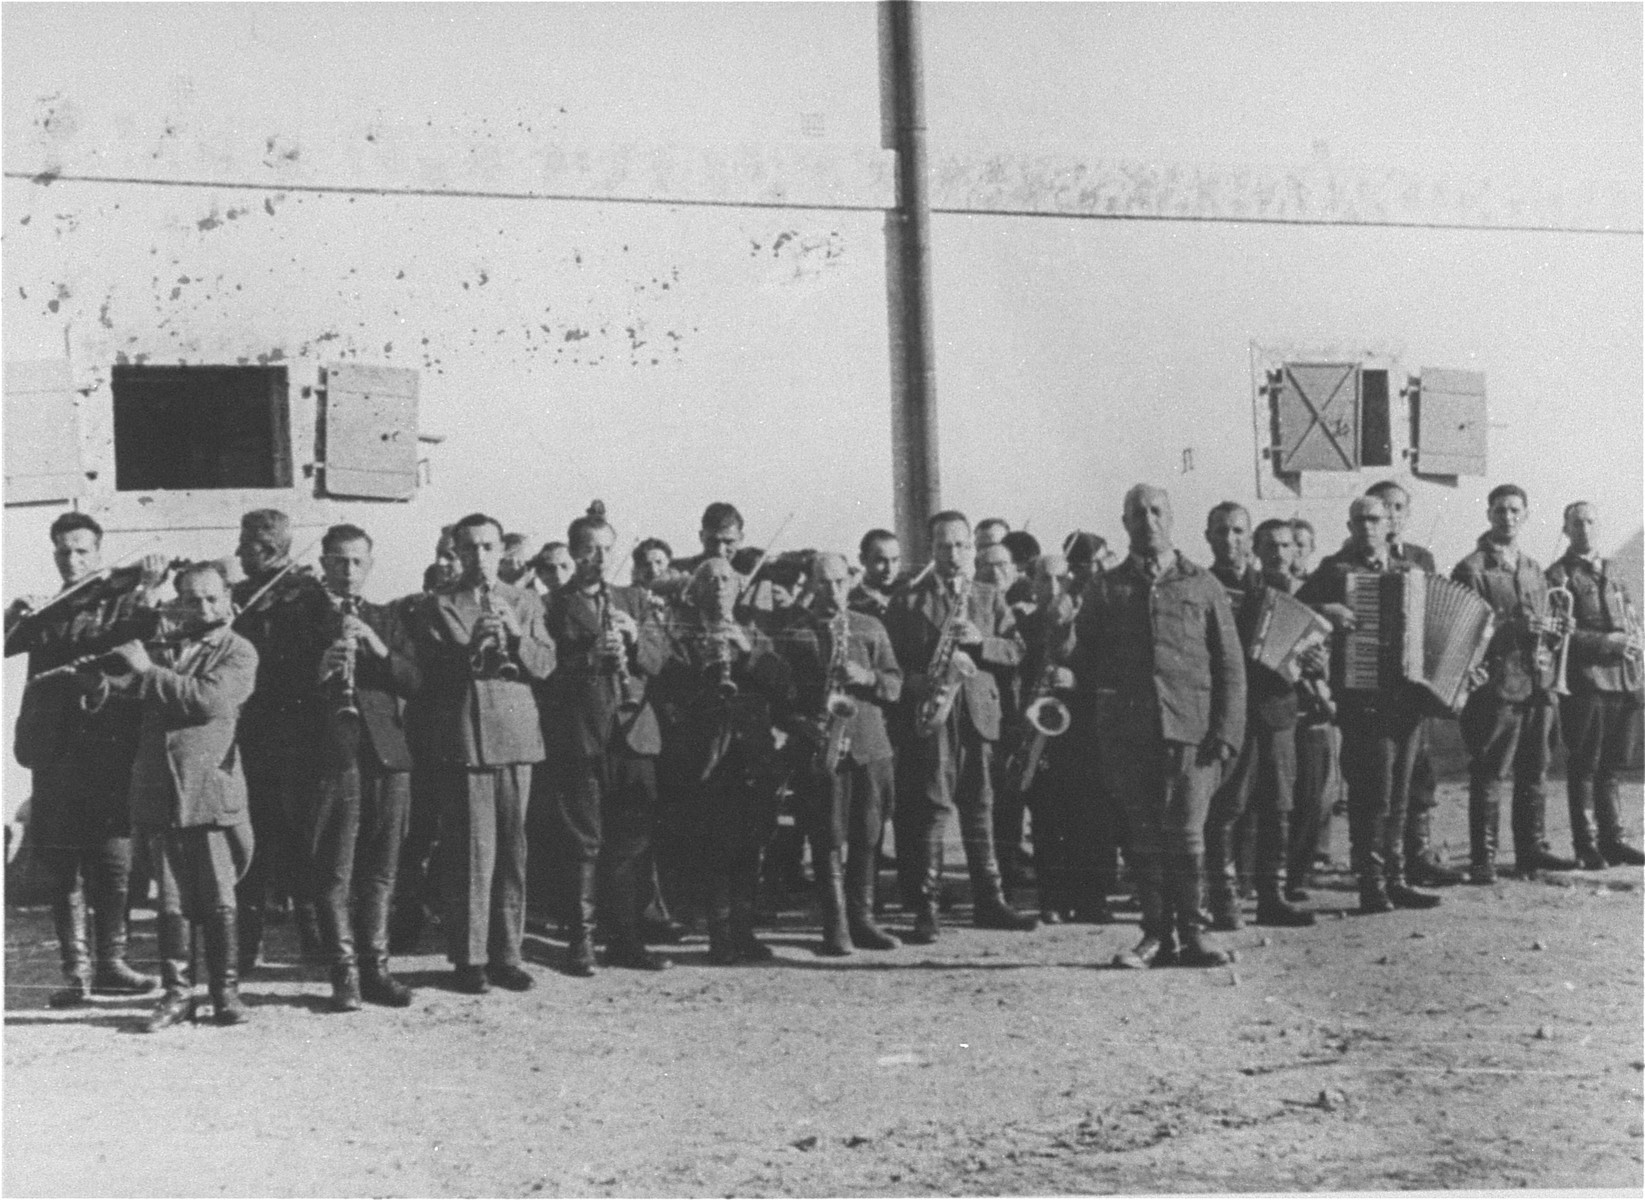 "Members of the camp orchestra perform in front of a barracks in the Janowska concentration camp.  The Janowska orchestra included some of the leading Jewish musicians in Lvov, among them violinist Leonid Stricks and cellist Leon Eber.  The SS forced the orchestra to perform during selections and actions and even ""commissioned"" a special composition to be played on these occasions.  Entitled ""Todestango"" [Tango of Death], the piece was composed by Yakub Munt (sp?), former director of the Lvov opera.  The music was based on an earlier work by Eduardo Bianco.  The members of the orchestra met their end in 1943 when they were shot to death by their overseers while playing their instruments."